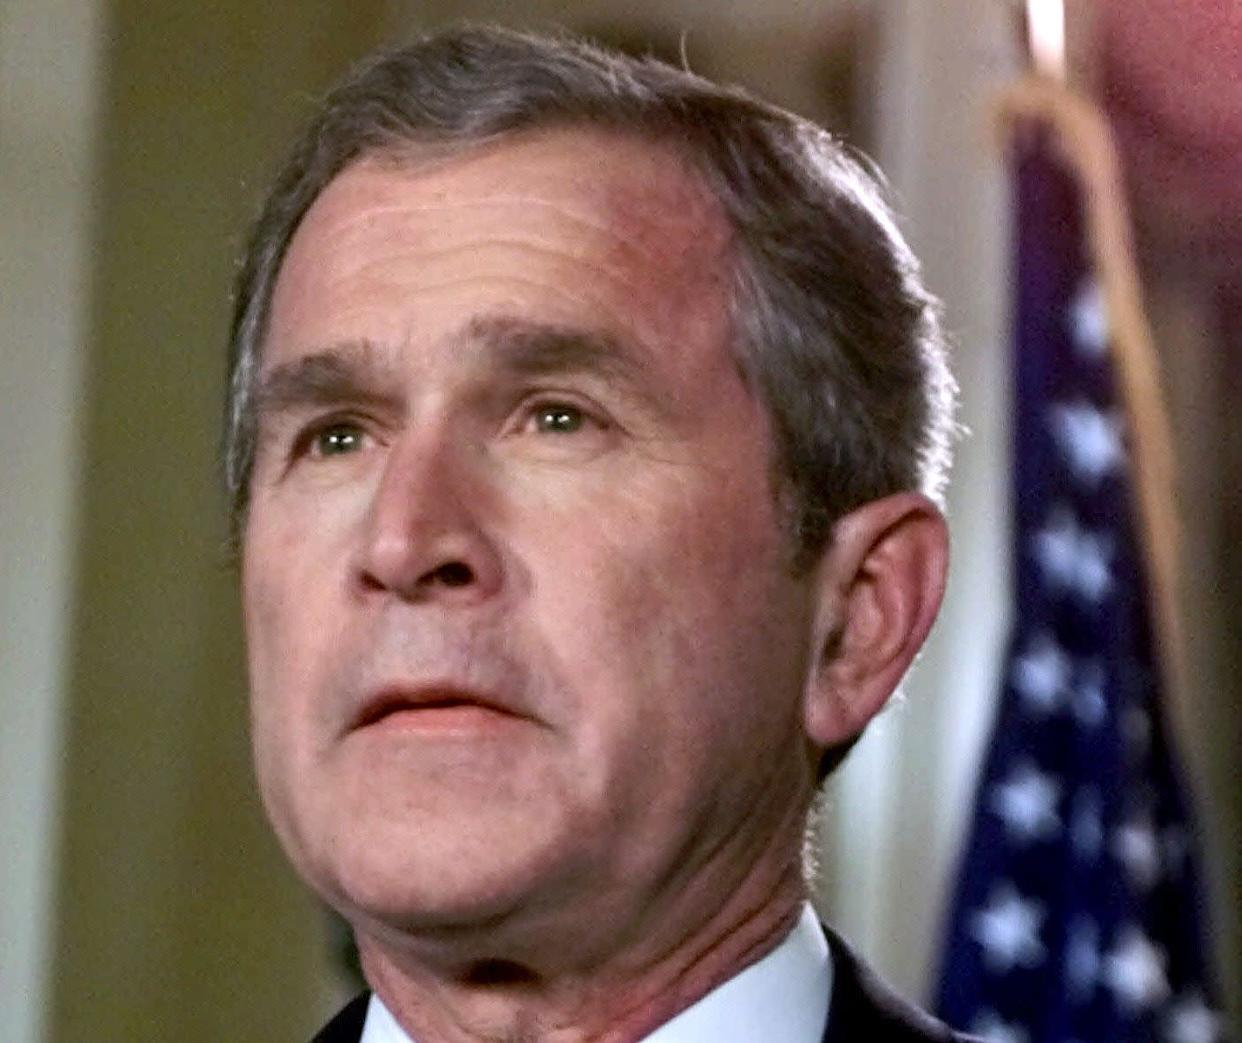 """<strong>""""I know the human being and fish can coexist peacefully."""" </strong> -- September 2000, explaining his energy policies at an event in Michigan. <a href=""""http://www.huffingtonpost.com/2009/01/03/bushisms-over-the-years_n_154969.html"""" rel=""""nofollow noopener"""" target=""""_blank"""" data-ylk=""""slk:Source: The Associated Press"""" class=""""link rapid-noclick-resp"""">Source: The Associated Press</a> (AP Photo/Eric Gay, File)"""